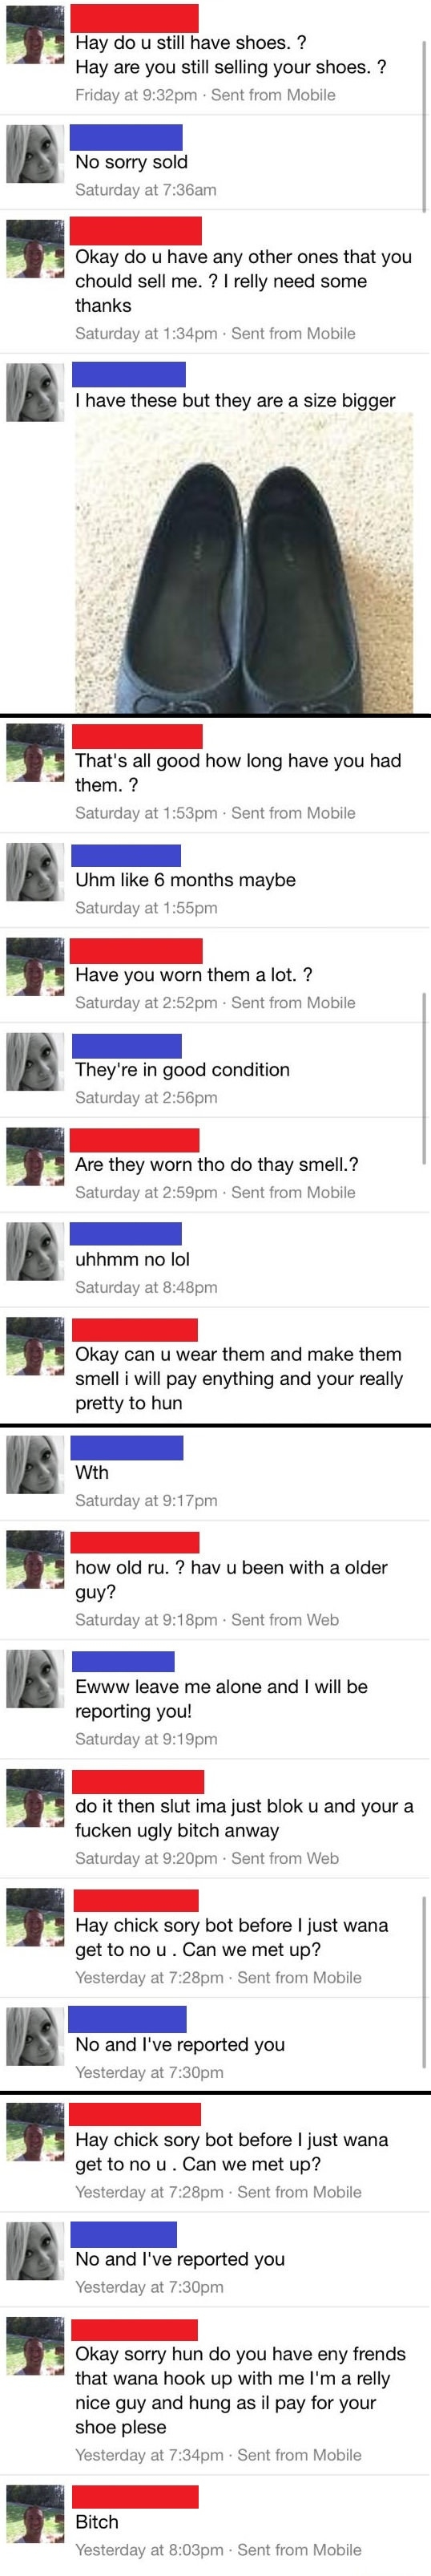 Can you wear them and make them smell?!